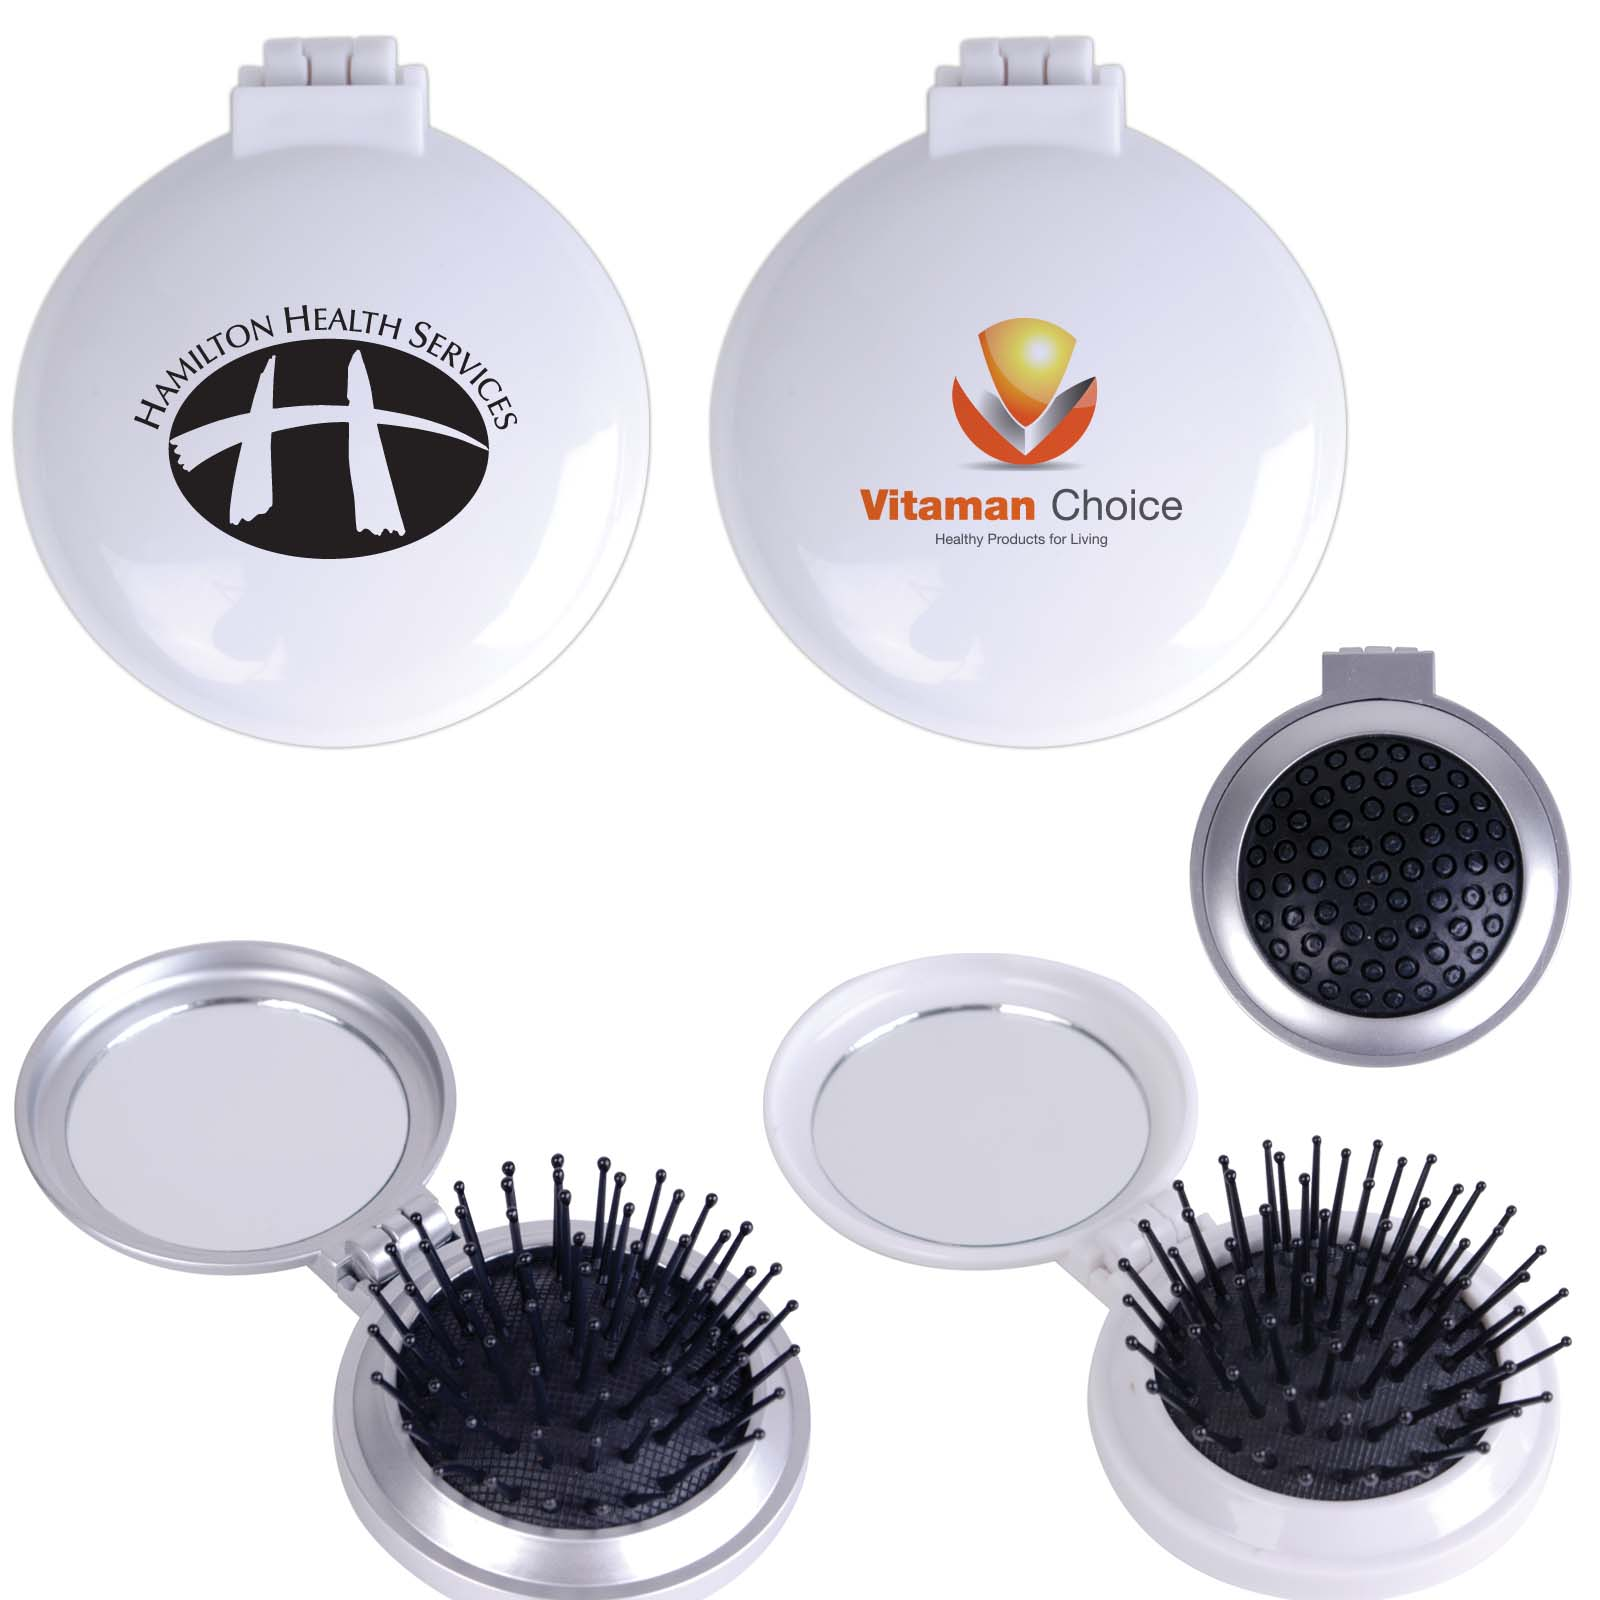 Compact Pop Up Brush / Mirror Set - Includes a 1 colour printed logo